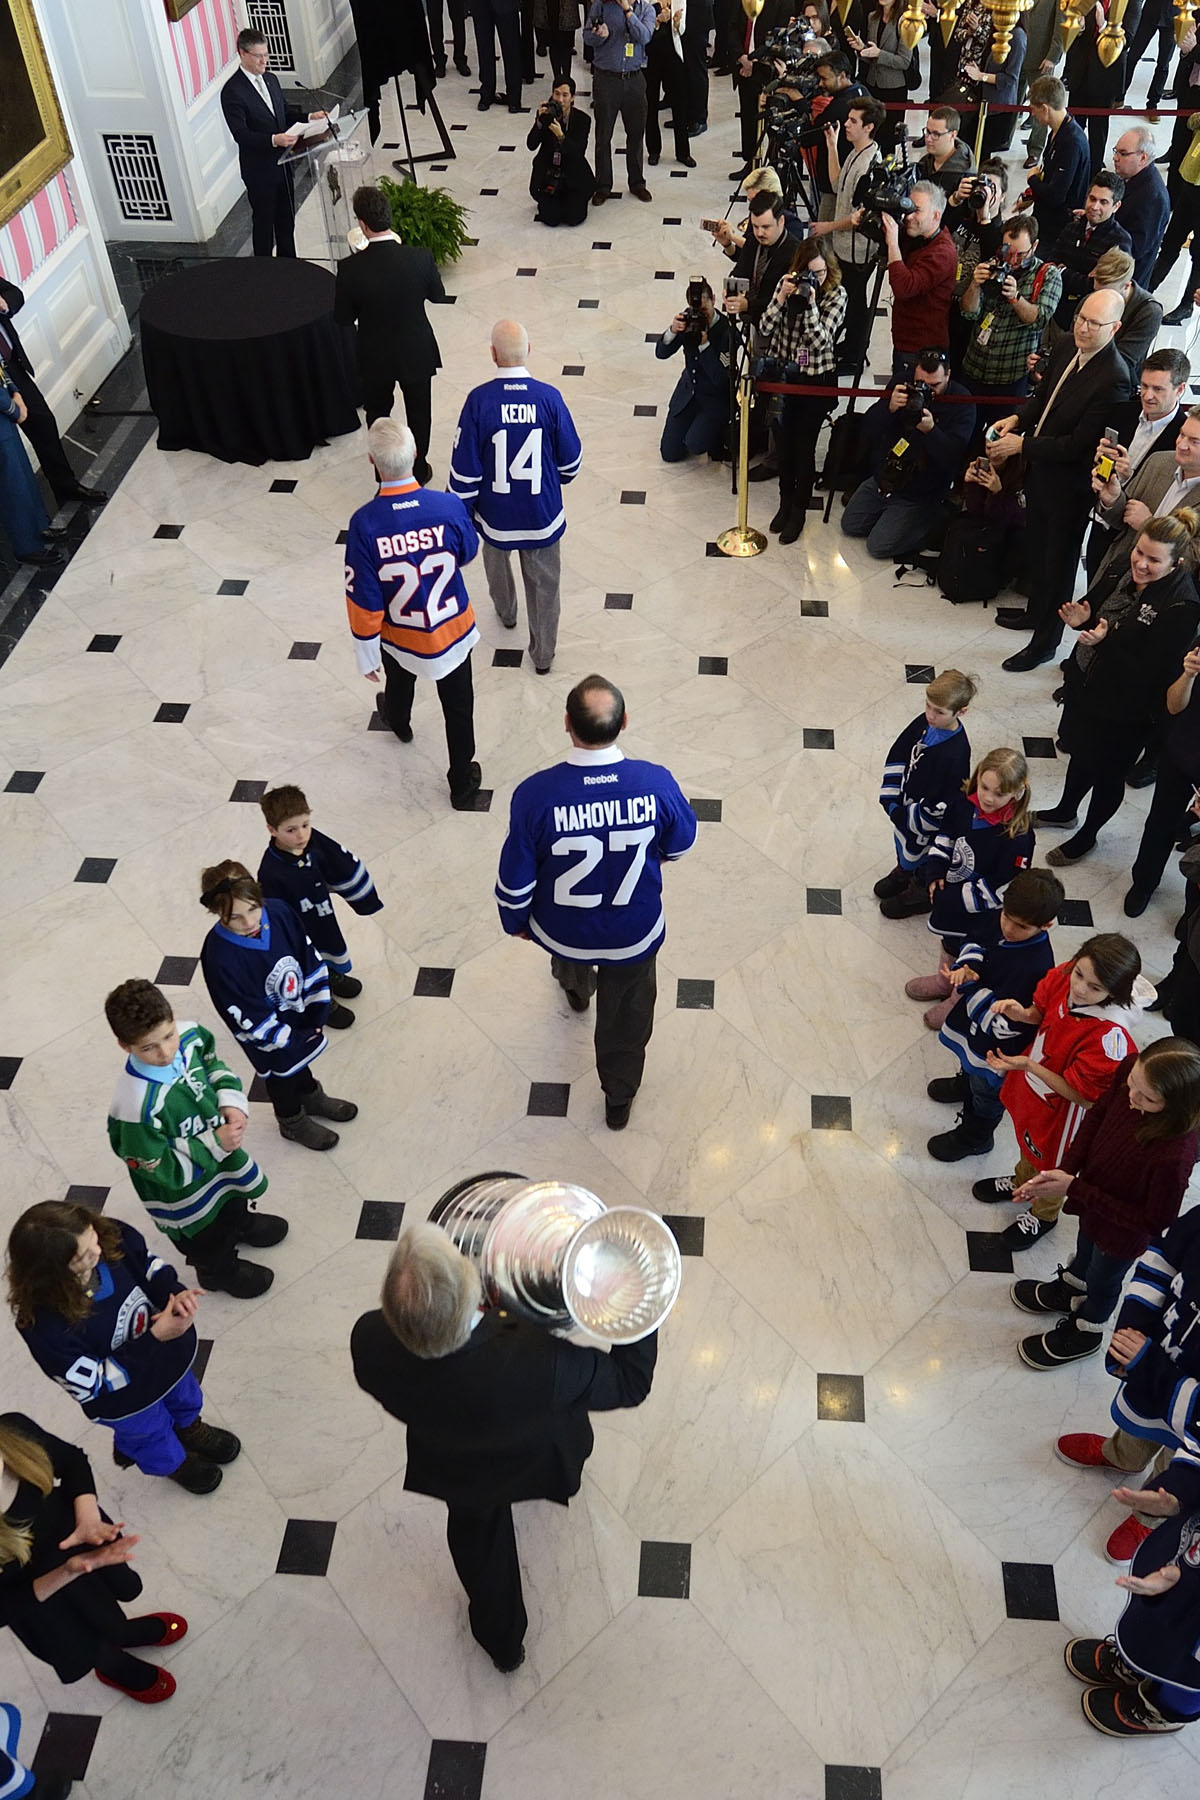 On the occasion of the 125th anniversary of the Stanley Cup, His Excellency the Right Honourable David Johnston, Governor General of Canada, welcomed the Stanley Cup to Rideau Hall on March 16, 2017.